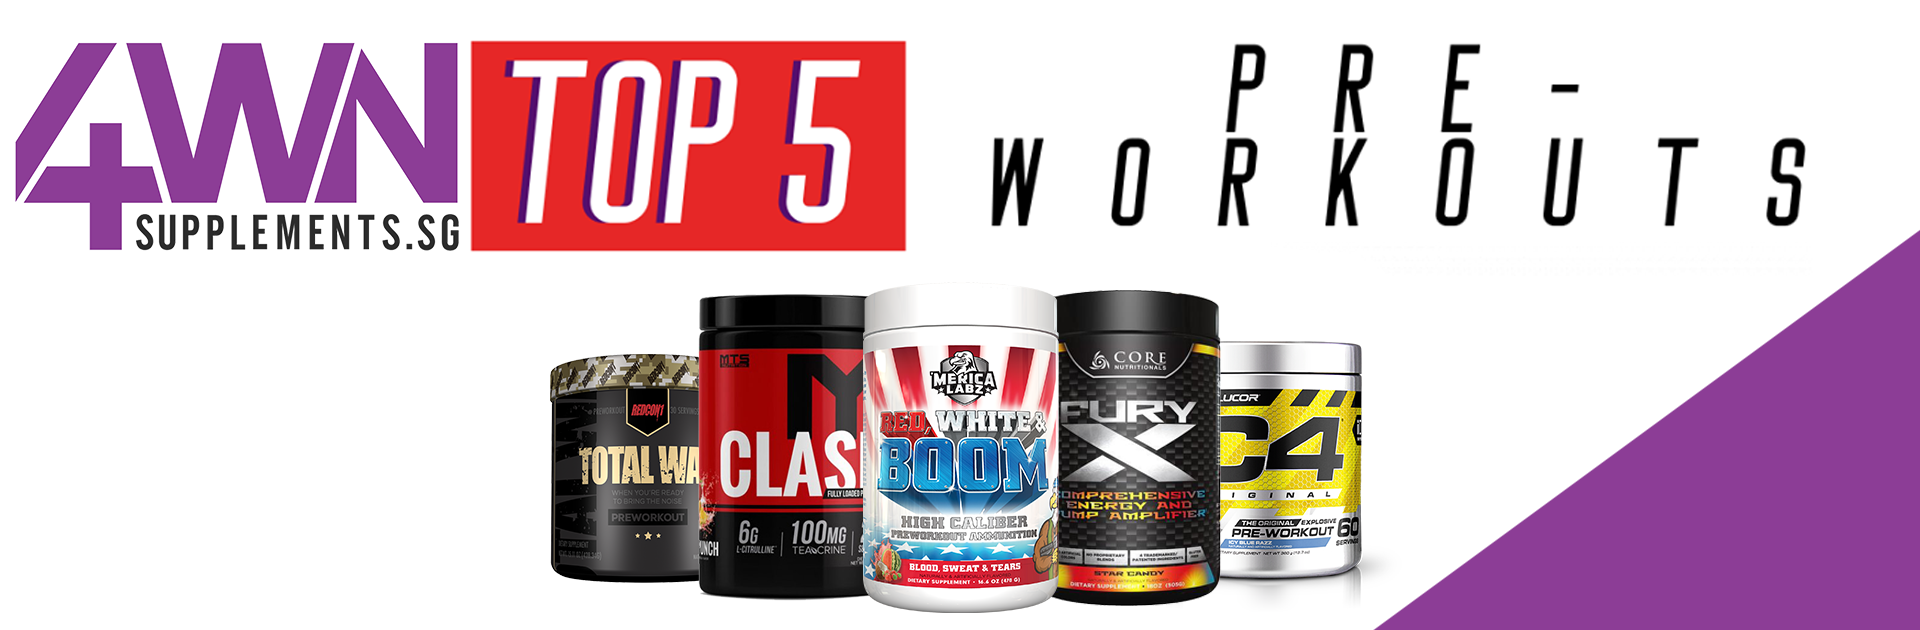 top 5 pre workouts 4WN Supplements